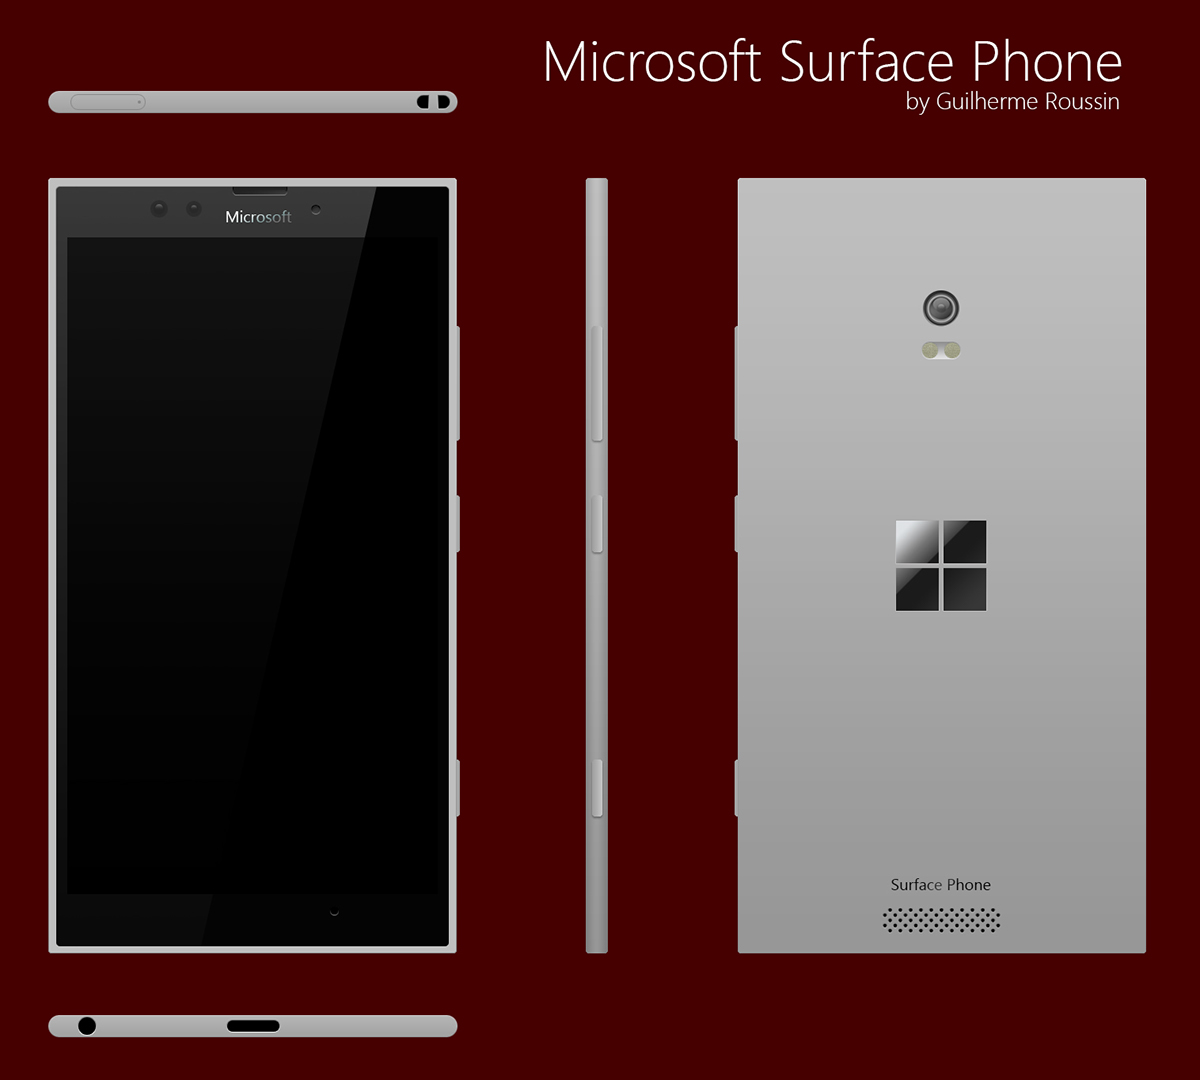 microsoft surface phone 2017. microsoft surface phone mockup january 2016 2017